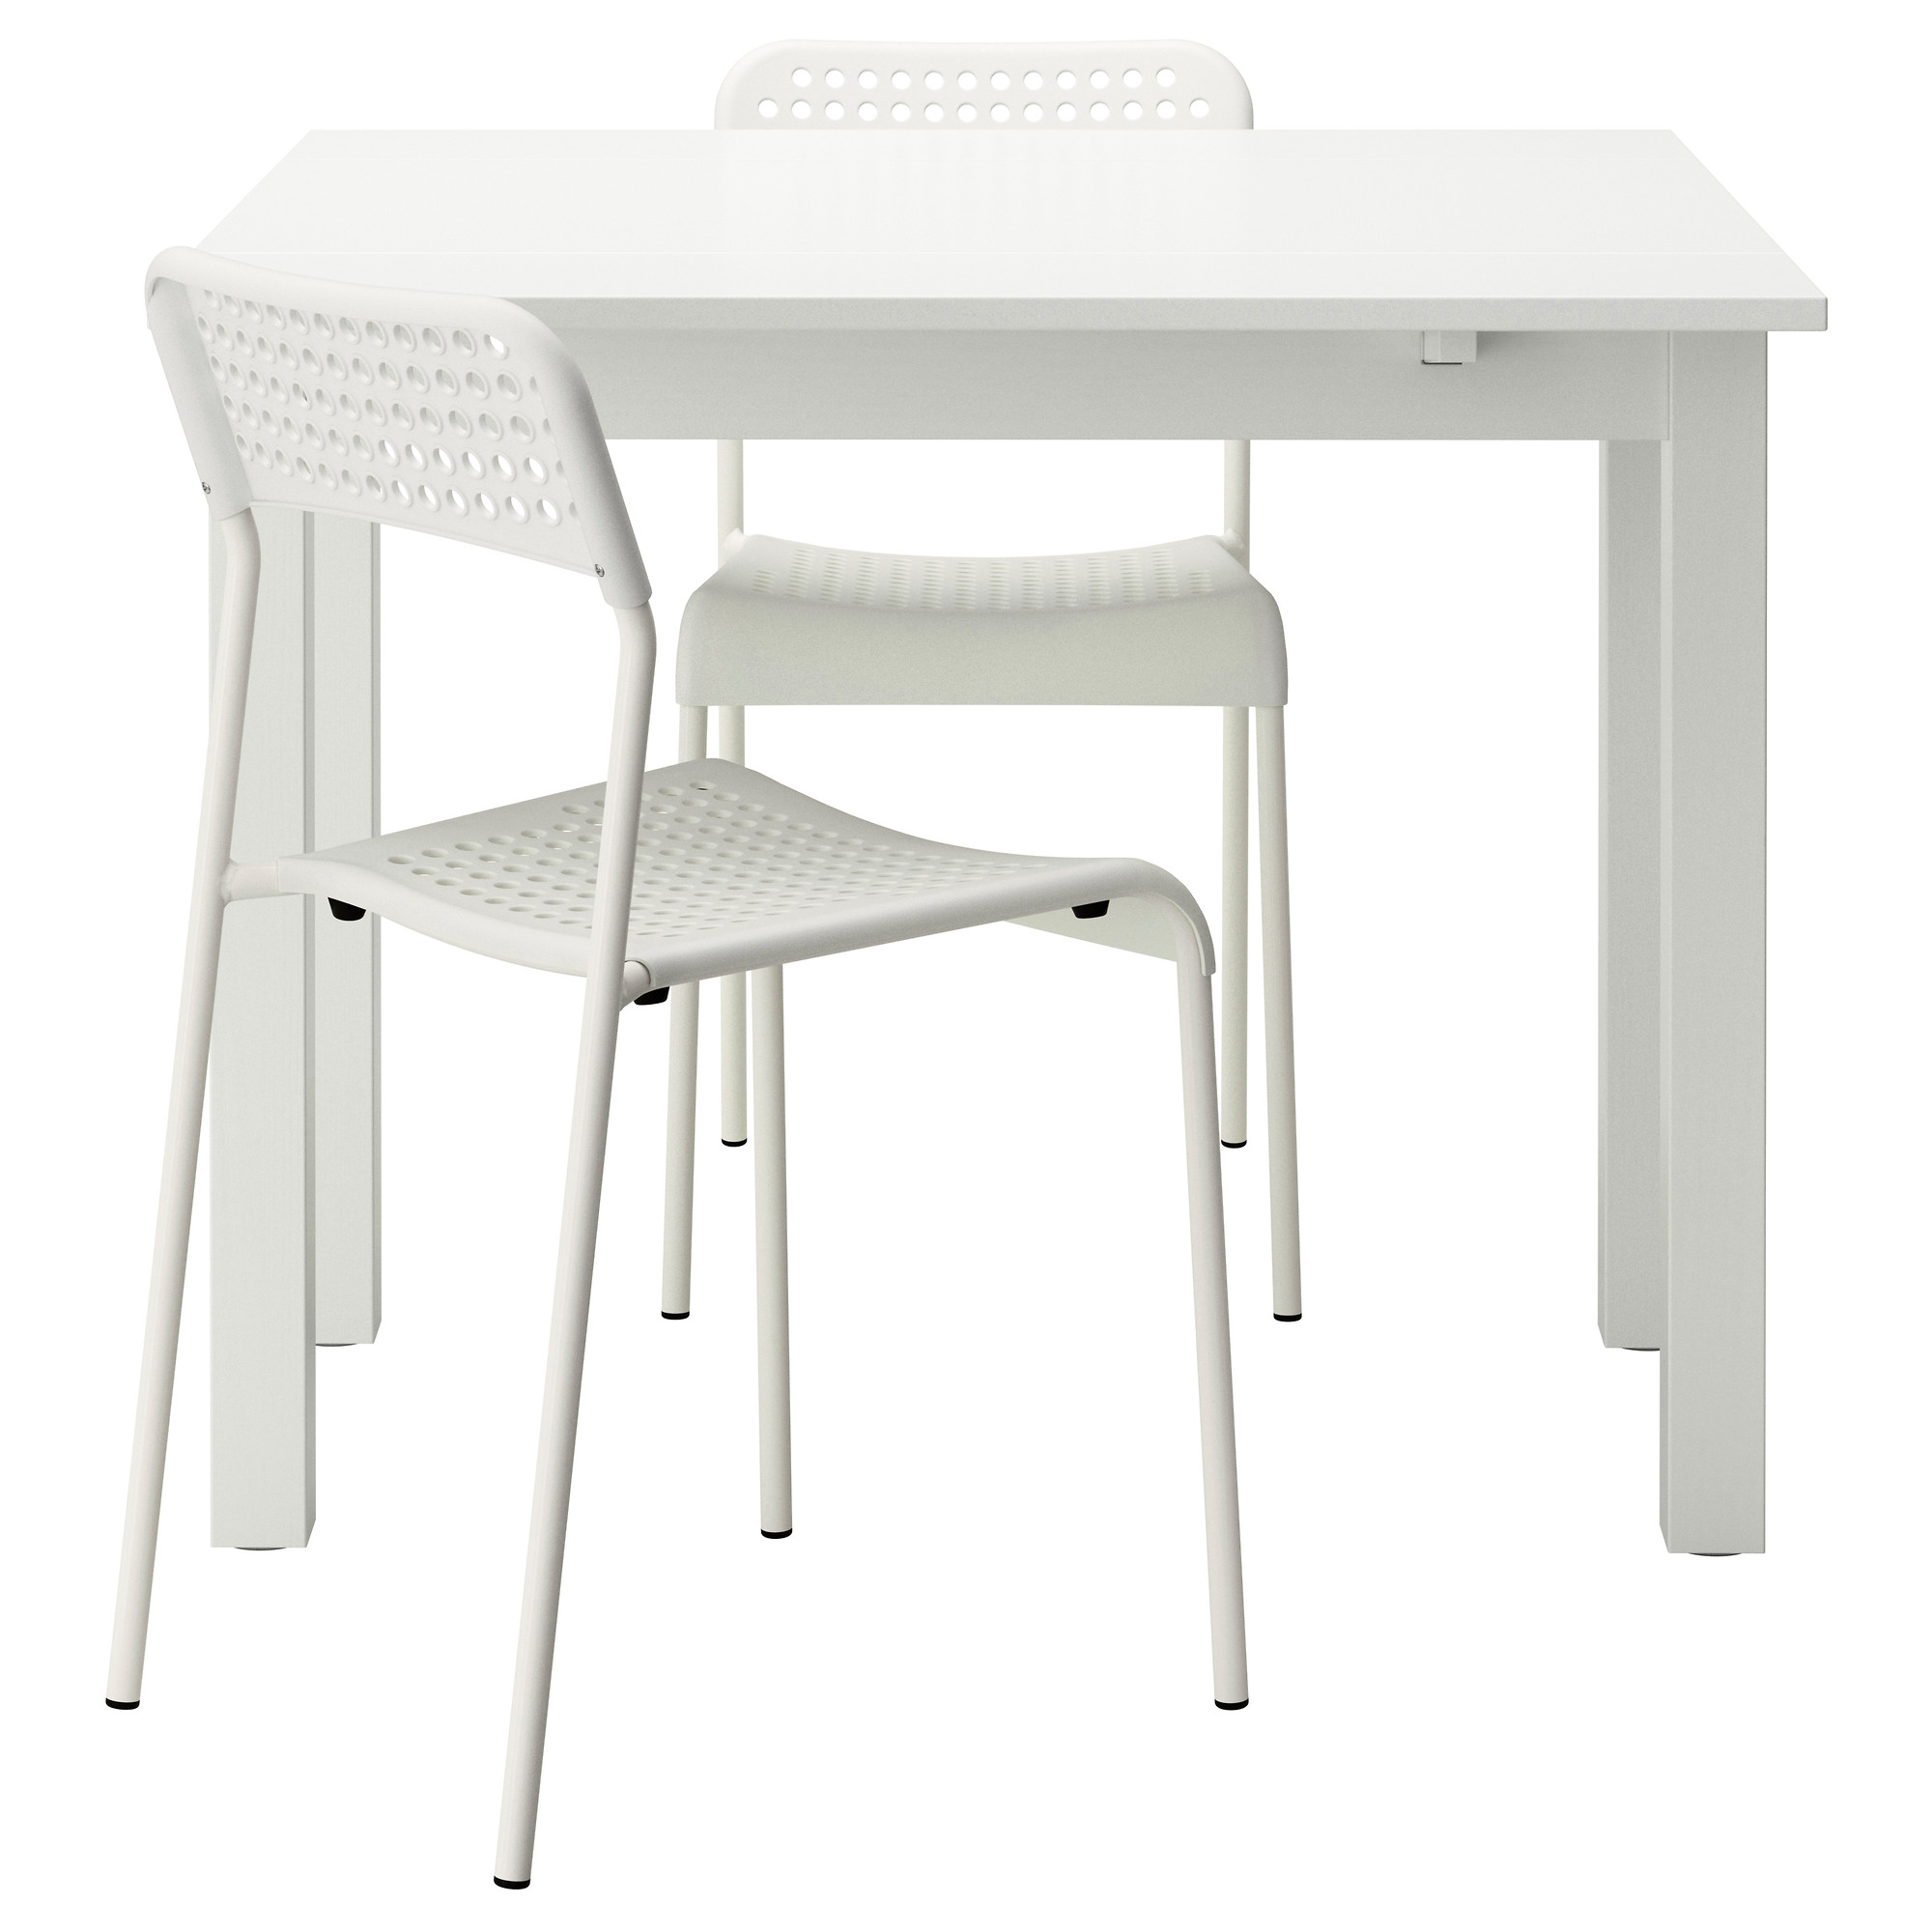 Table et chaise de cuisine ikea table chaise cuisine for Table de cuisine et chaises